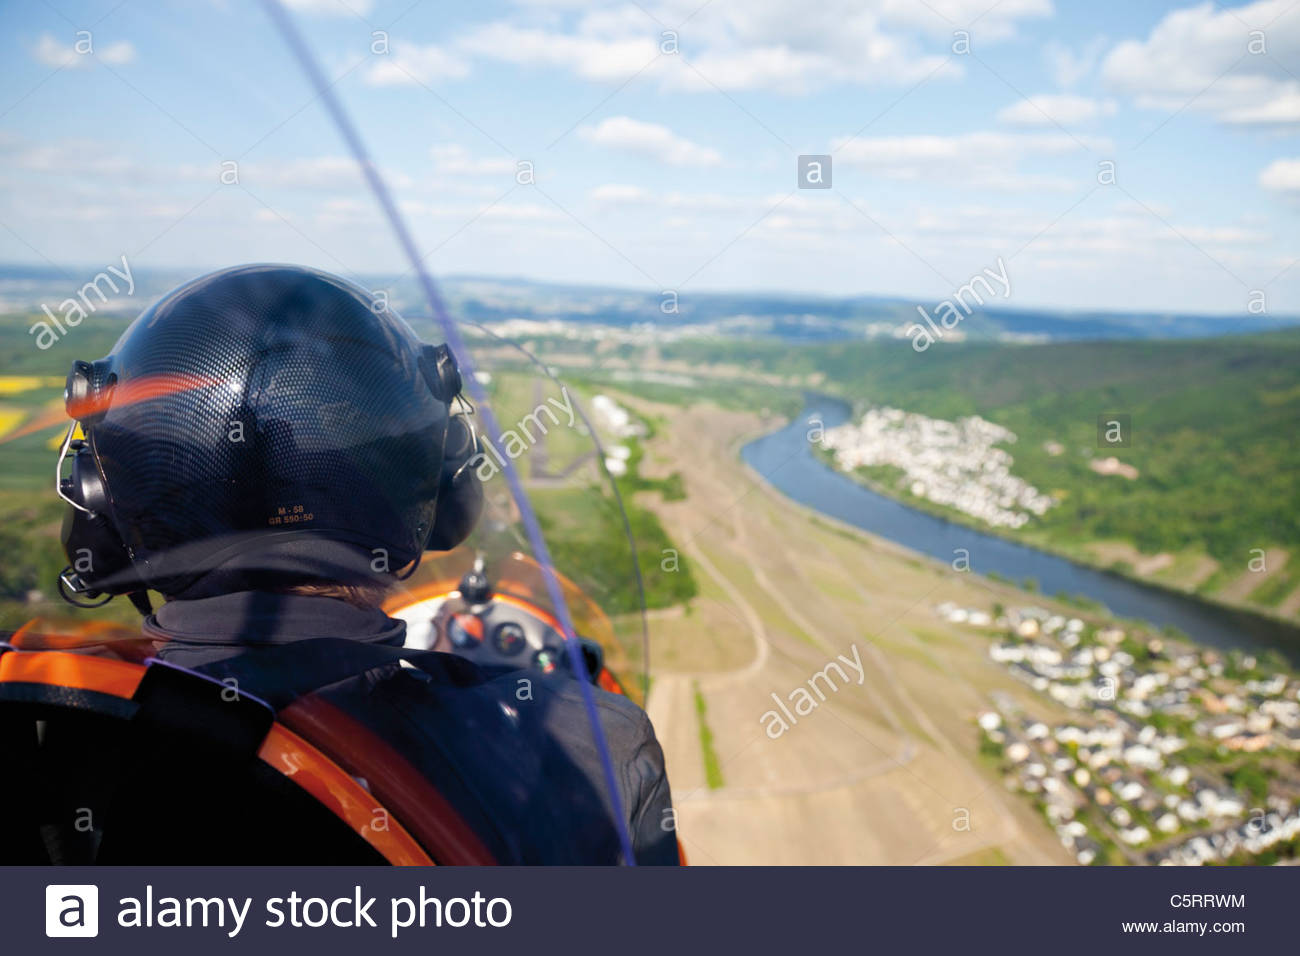 Europe, Germany, Rhineland-Palatinate, Koblenz, View of landing approach of gyrocopter - Stock Image